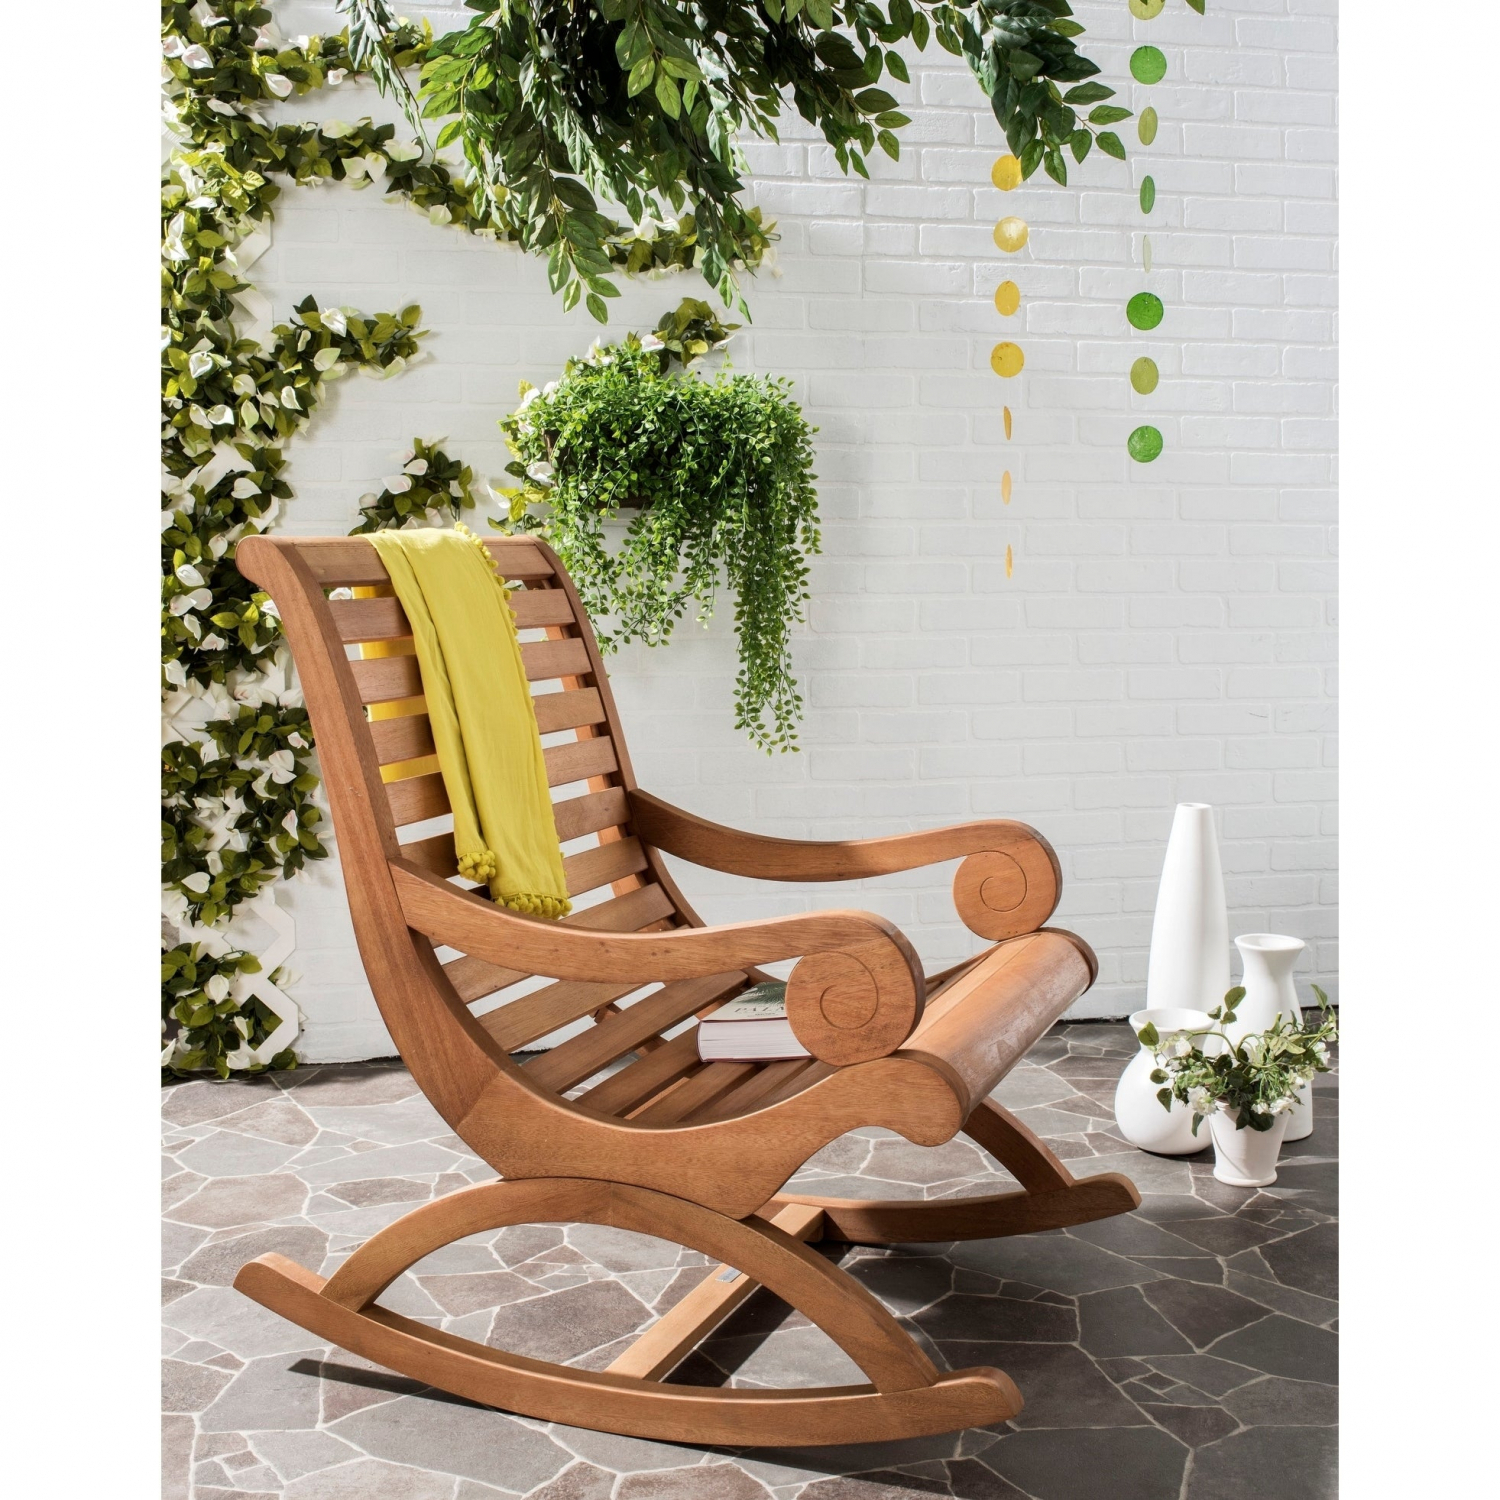 Eucalyptus Wood Rocking Chair Plantation Porch Patio Pertaining To Rocking Sofa Chairs (View 7 of 15)